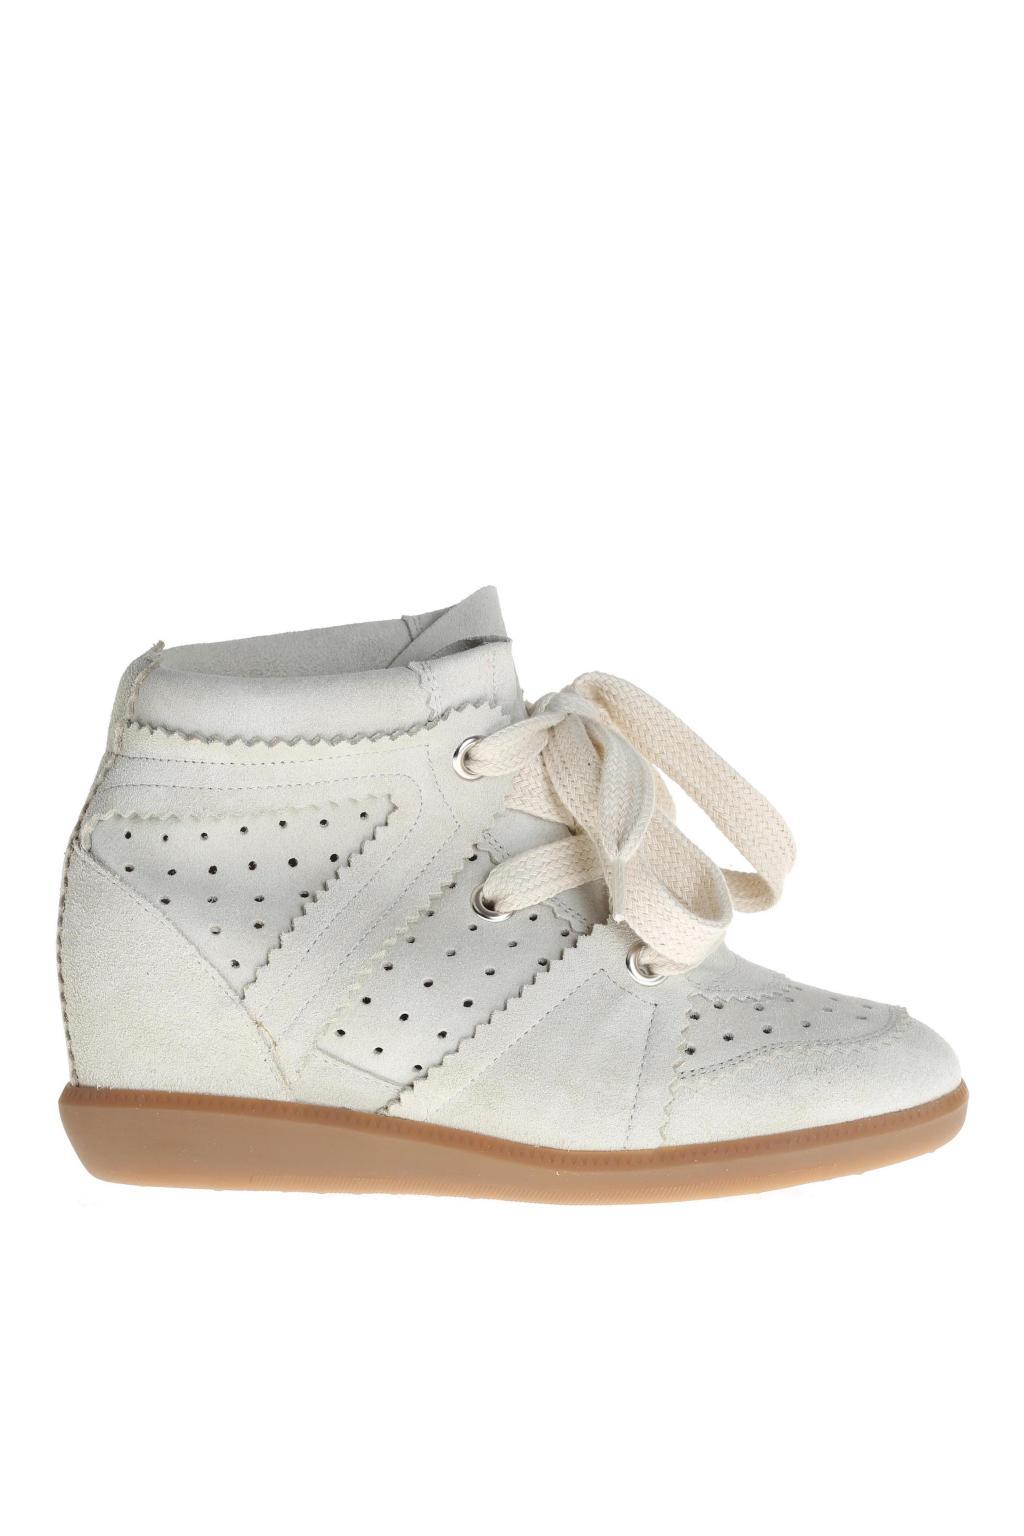 754795fe621c Étoile Isabel Marant Wedge  bobby  Sneakers in White - Lyst